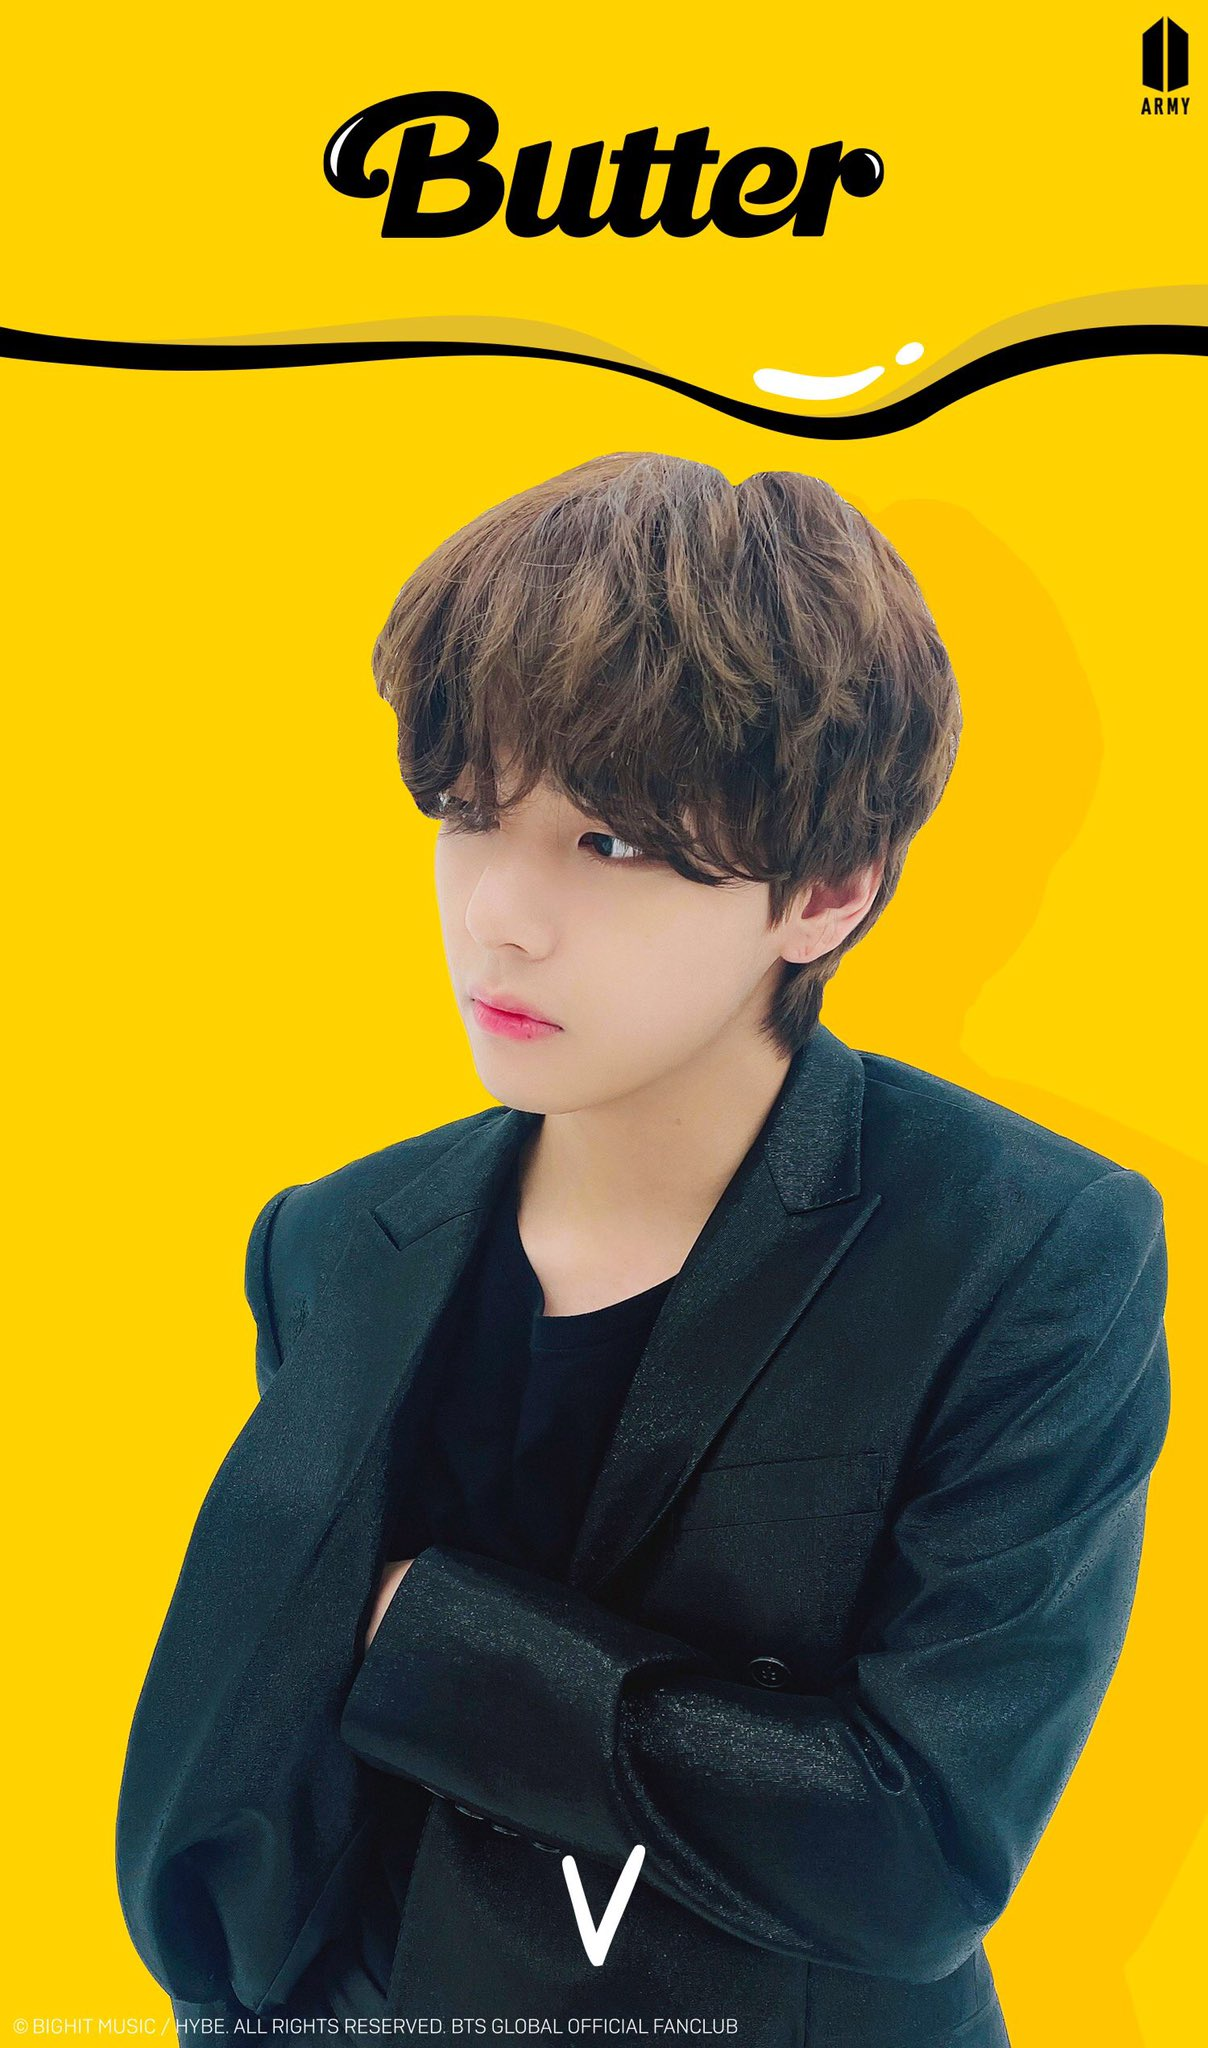 Awesome Kim Taehyung Butter Hair wallpapers to download for free greenvirals